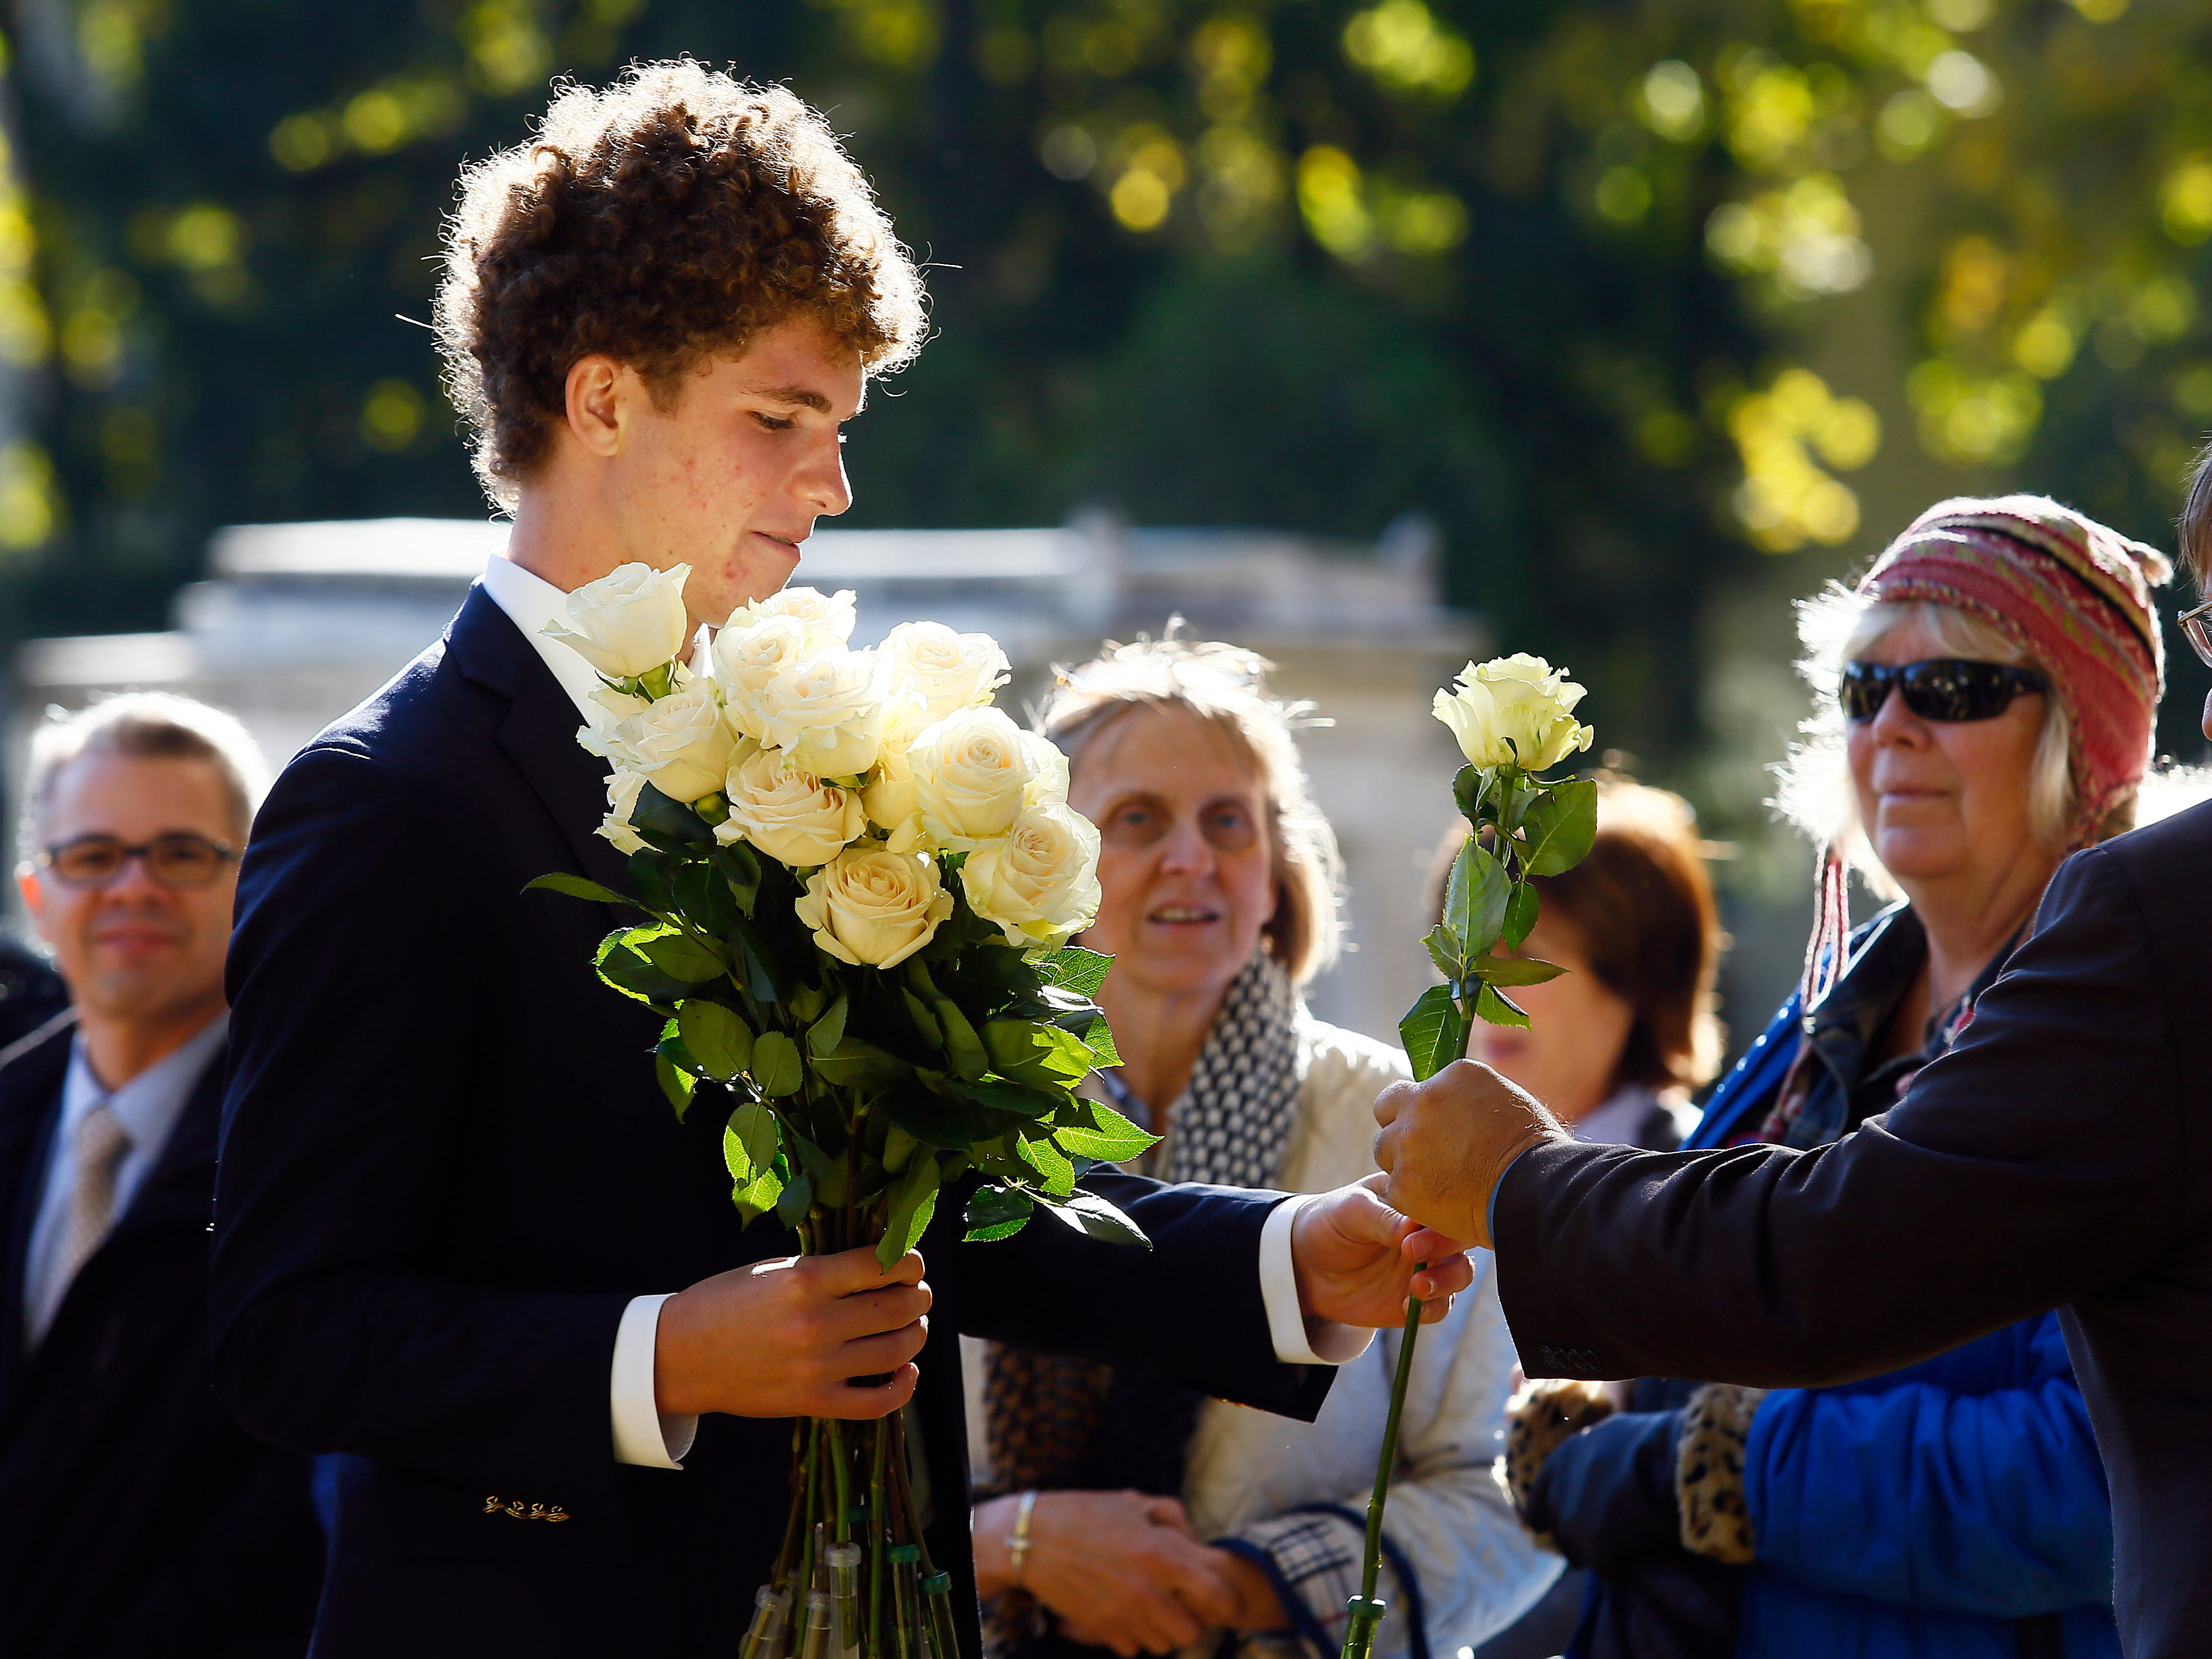 Delbarton junior Jack Readlinger, l, hands out roses to classmates during a graveside service and blessing at Orchard Street Cemetery in Dover gathering to bless the grave for baby Anthony Mary, whom they so-named after he was abandoned and found deceased at a recycling center in Mine Hill. October 30, 2018, Dover, NJ